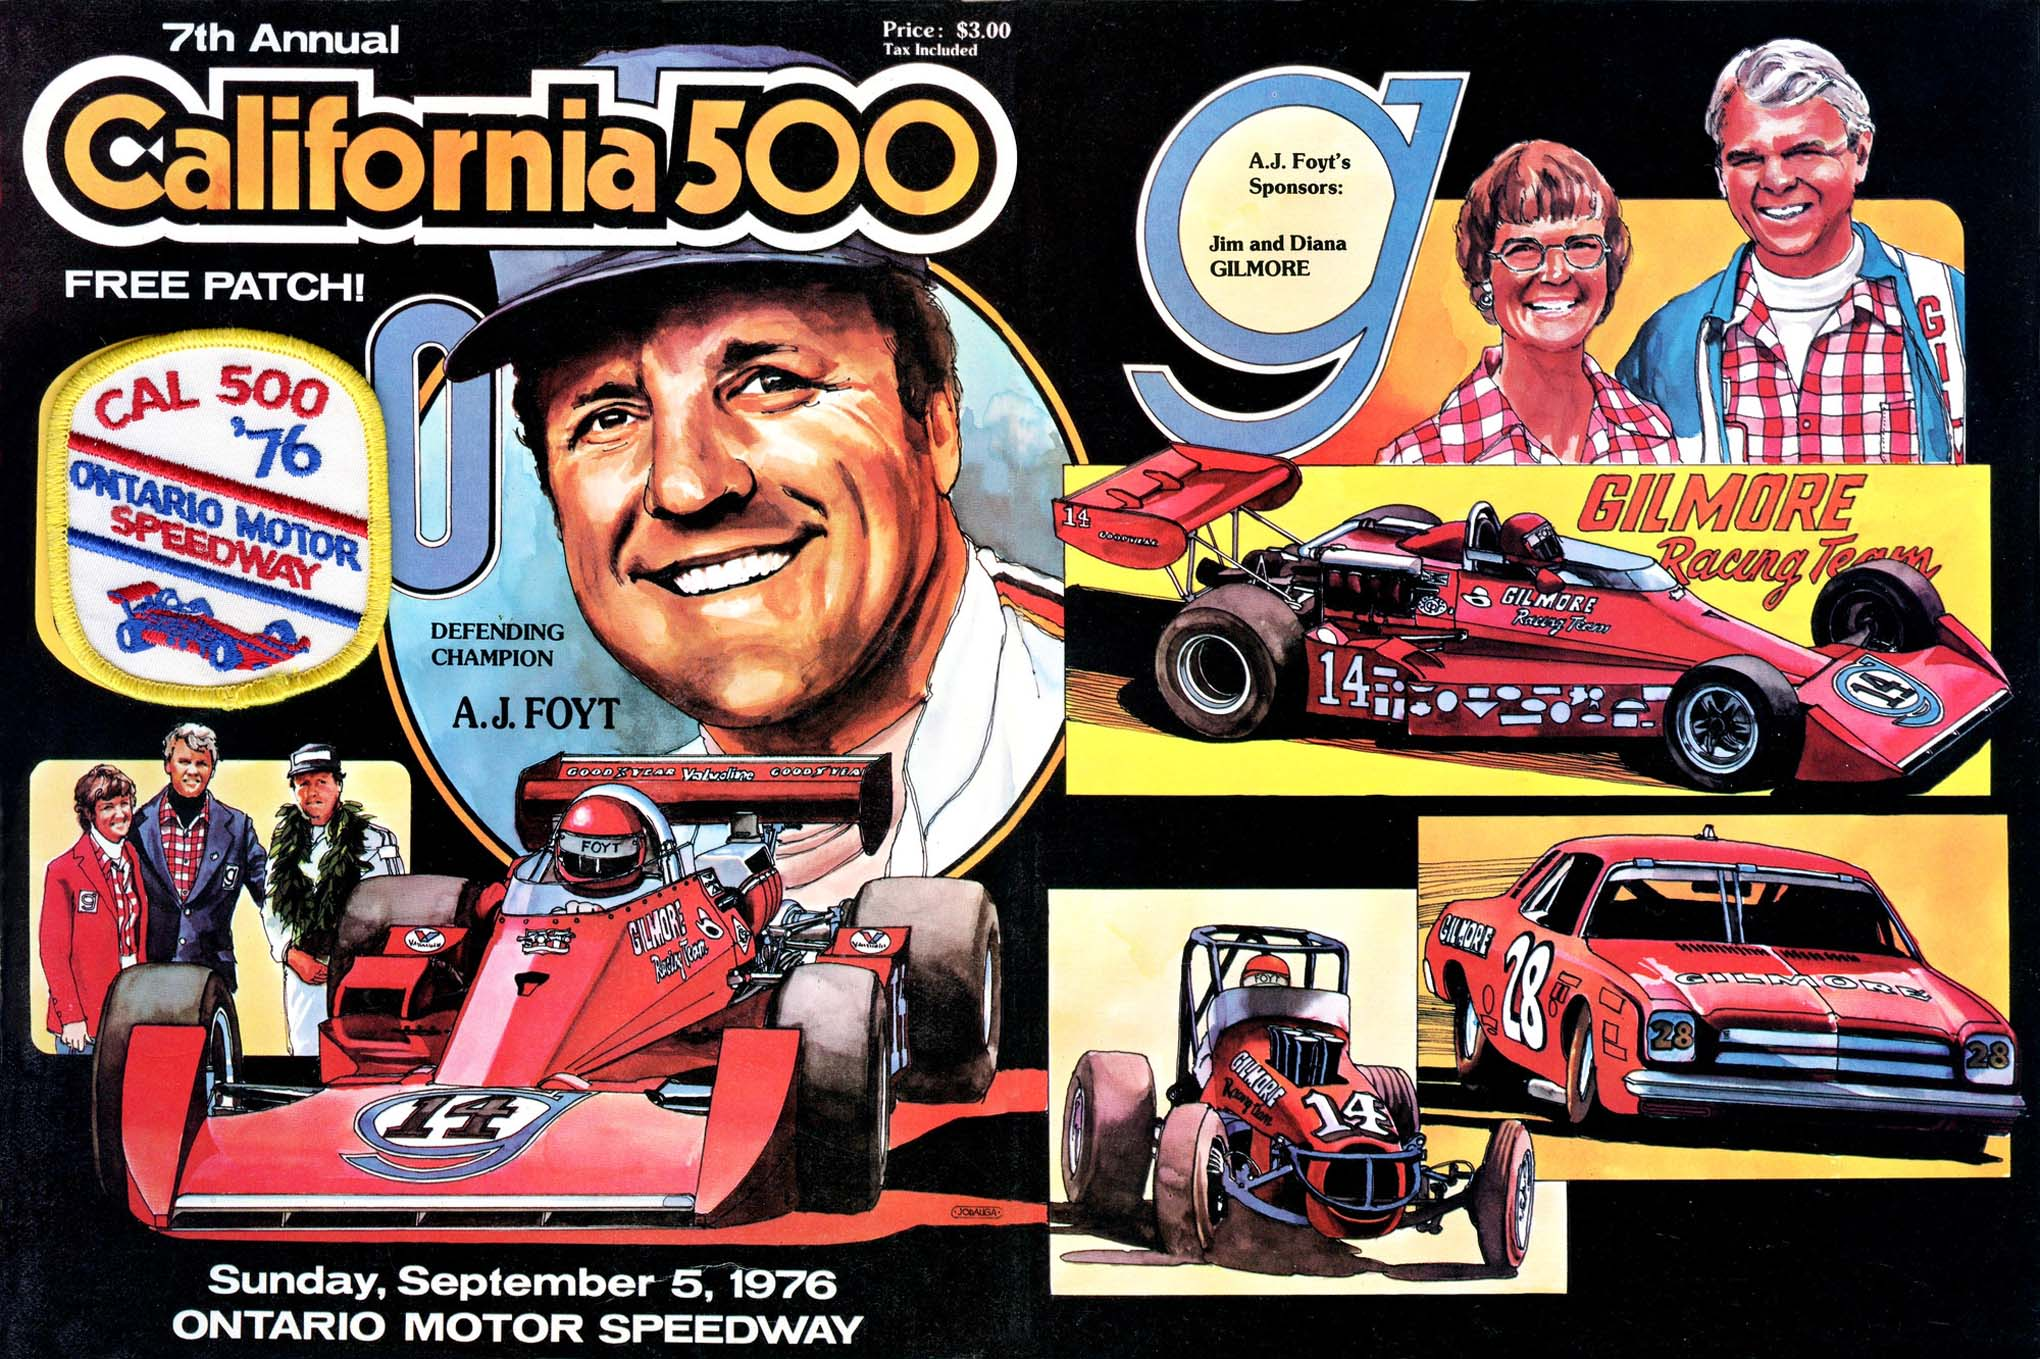 During the 1970s, John branched out from drag racing to other forms of motorsports and did a series of program covers for Ontario Motor Speedway's California 500. He did this one featuring Indy Car legend A.J. Foyt in 1977.